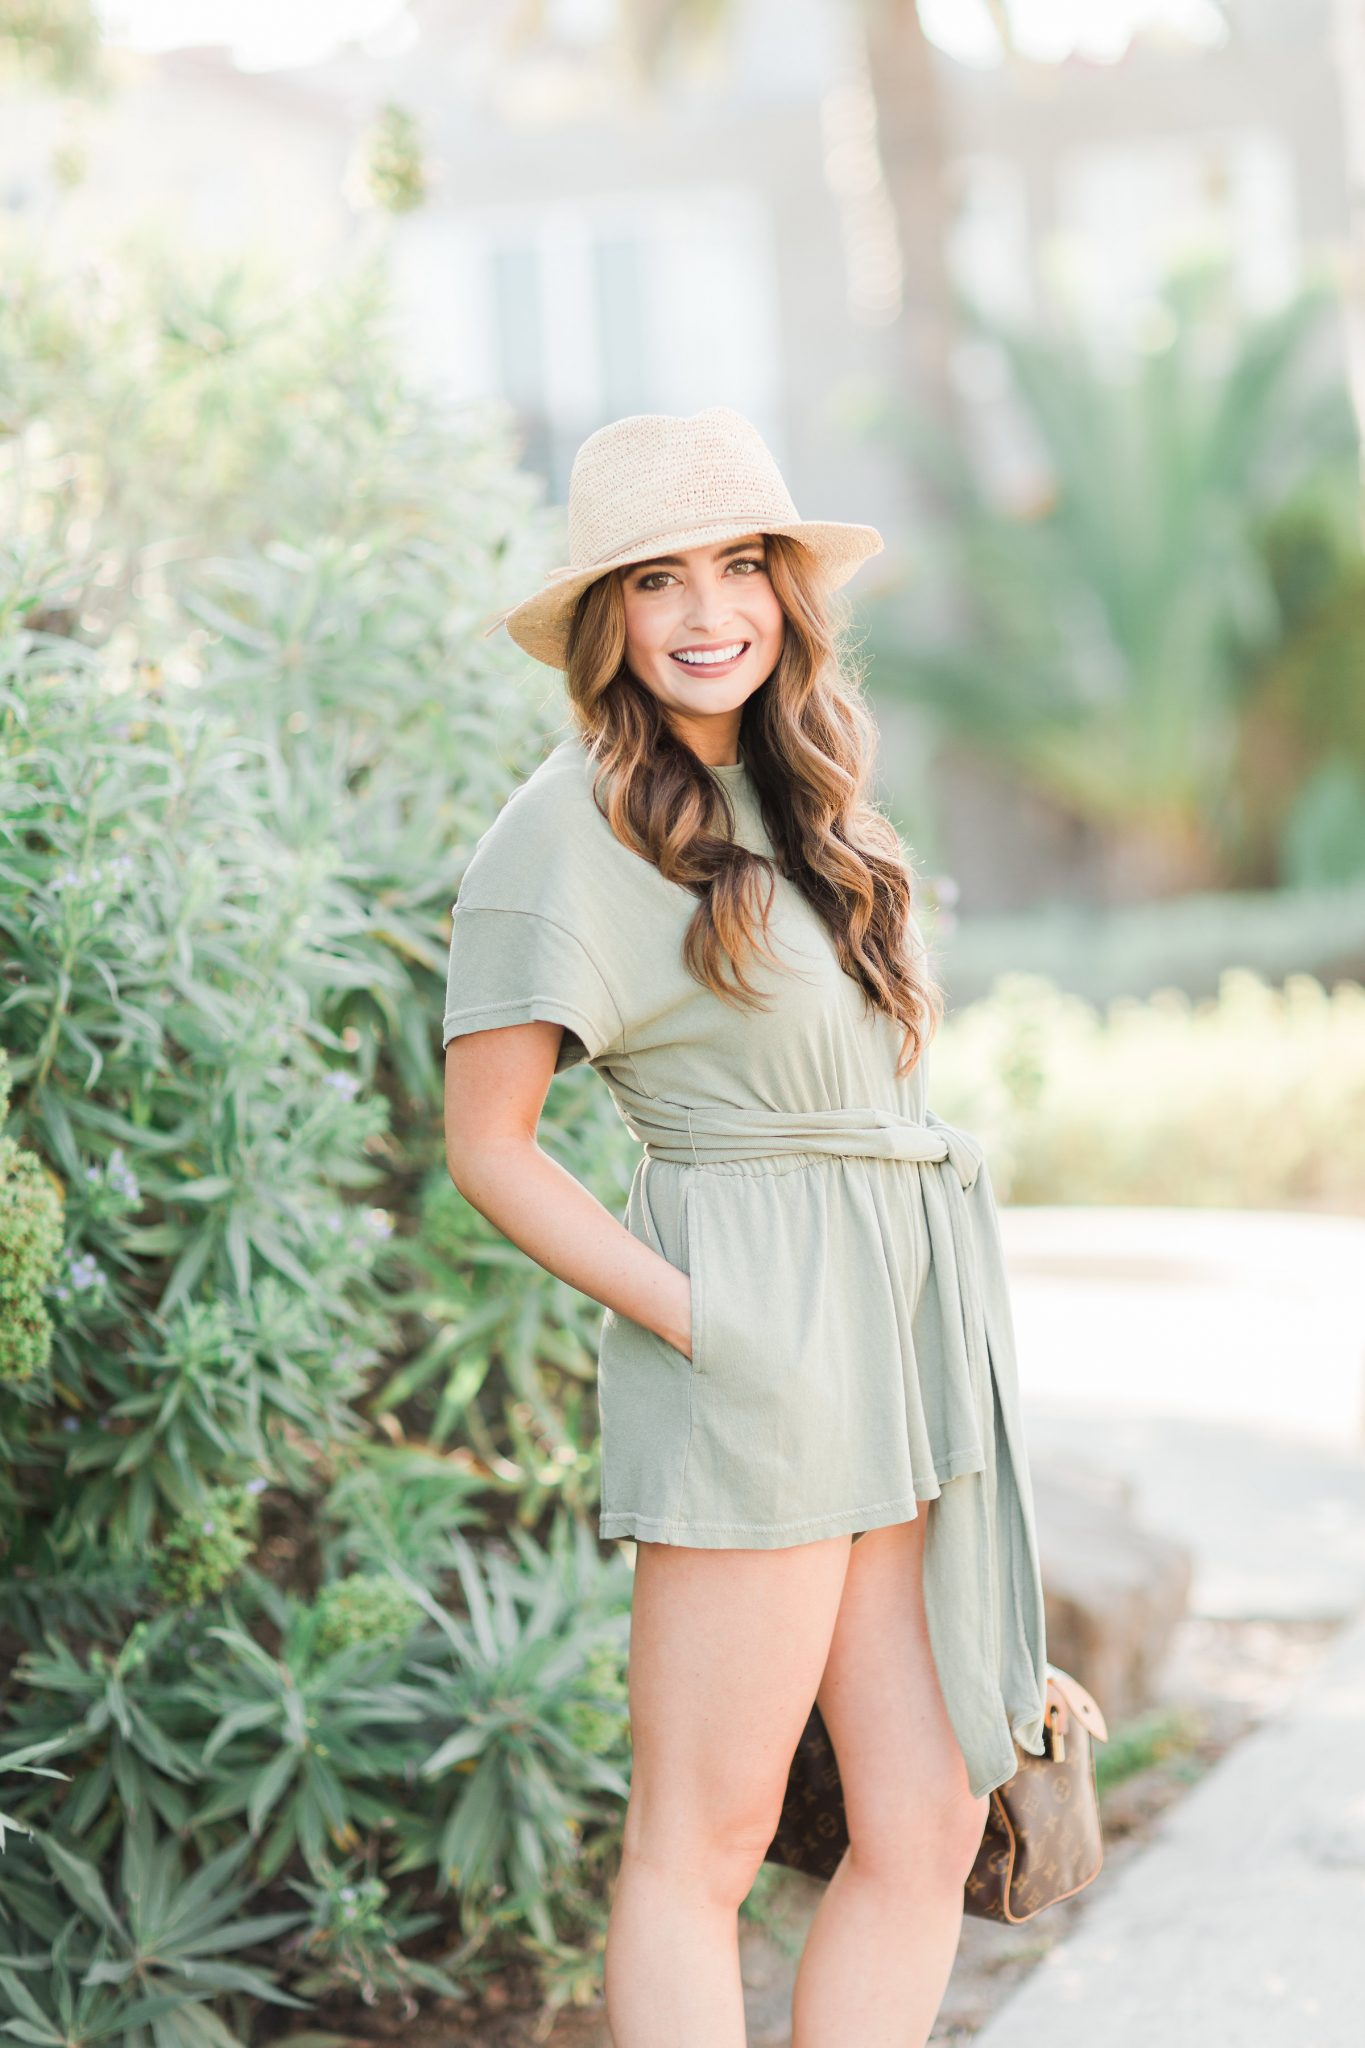 Maxie Elle - Free people olive romper with straw hat